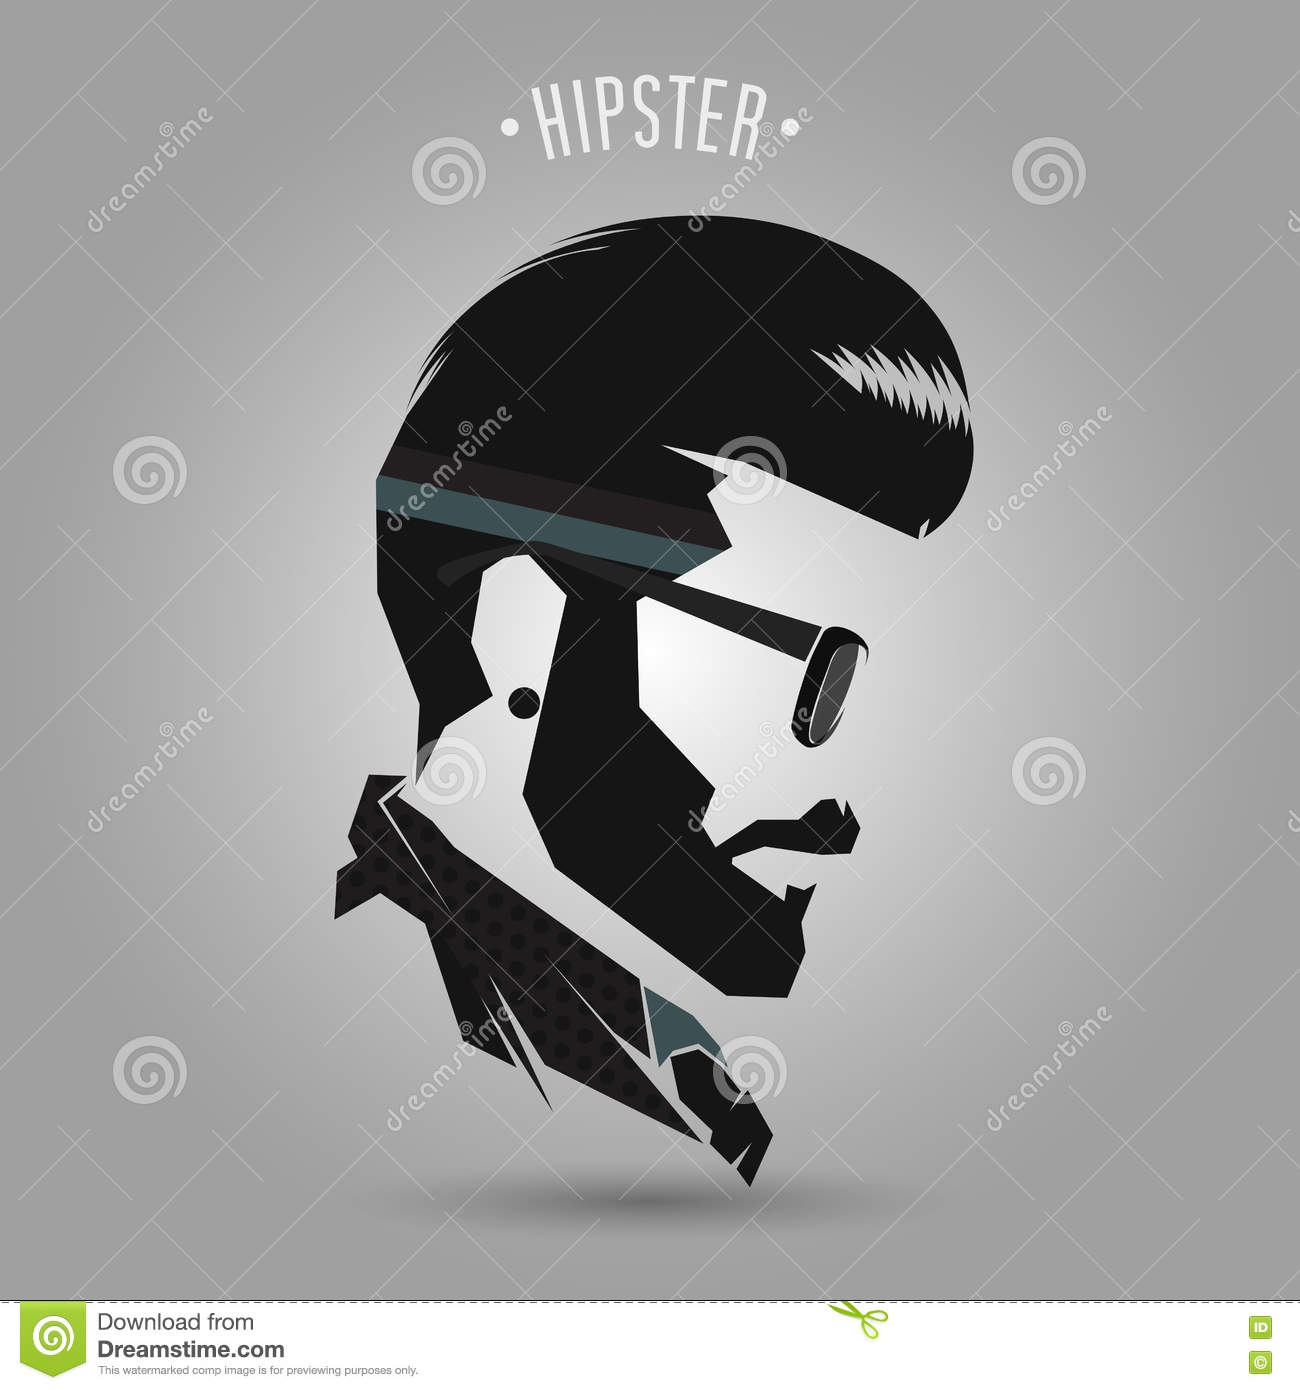 Hipster Vintage Hair Style Stock Vector Image 72927869